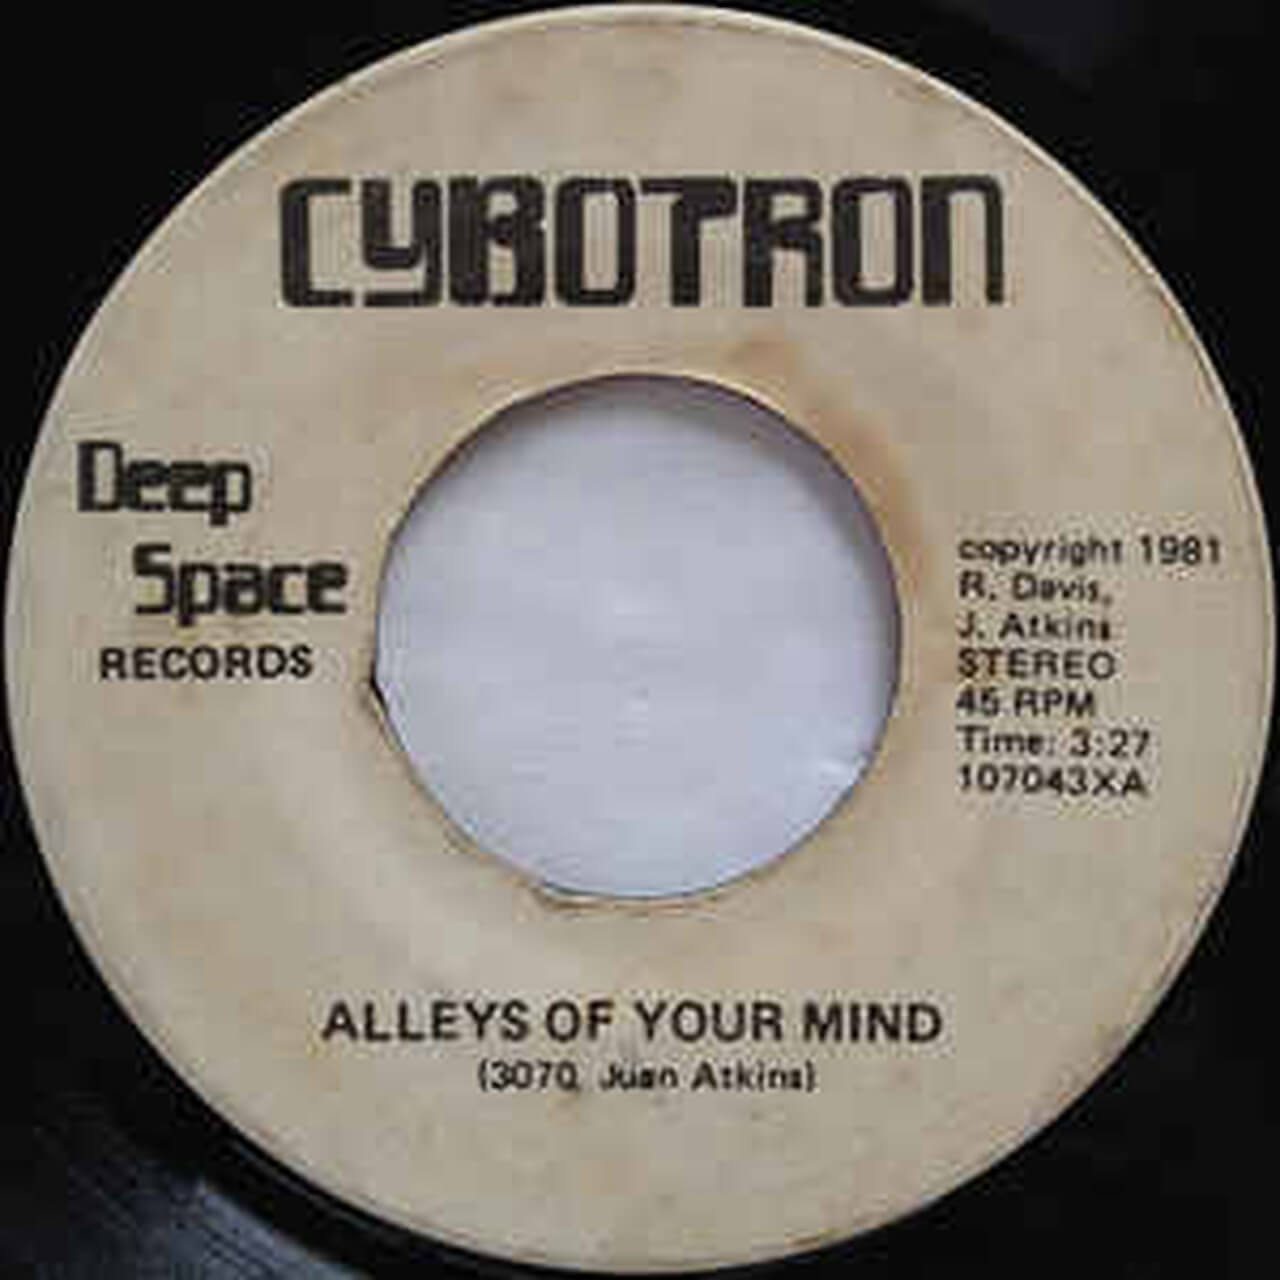 cybotron alleys of your mind CD